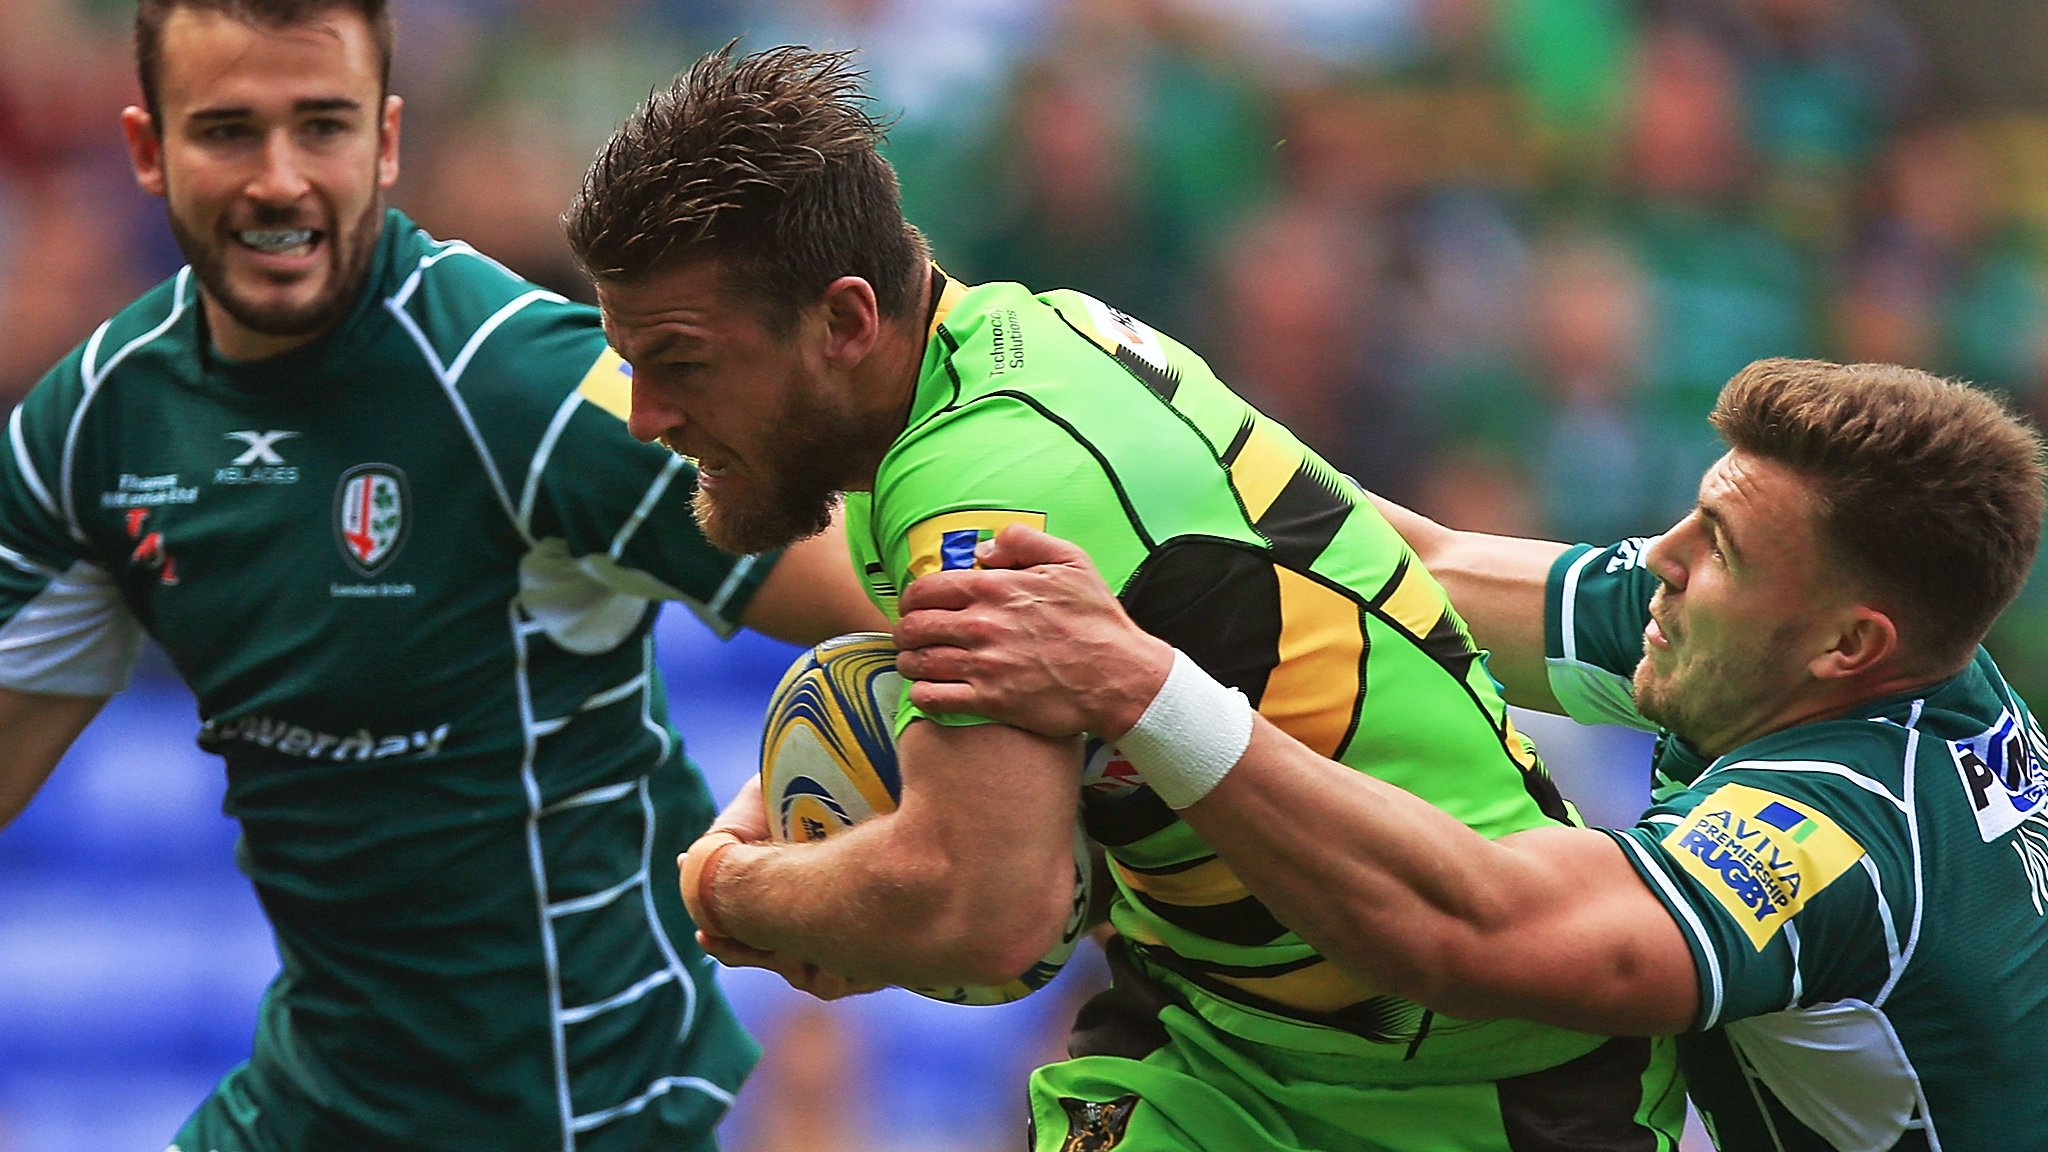 Rob Horne: Australia international delighted to get first Northampton Saints tries